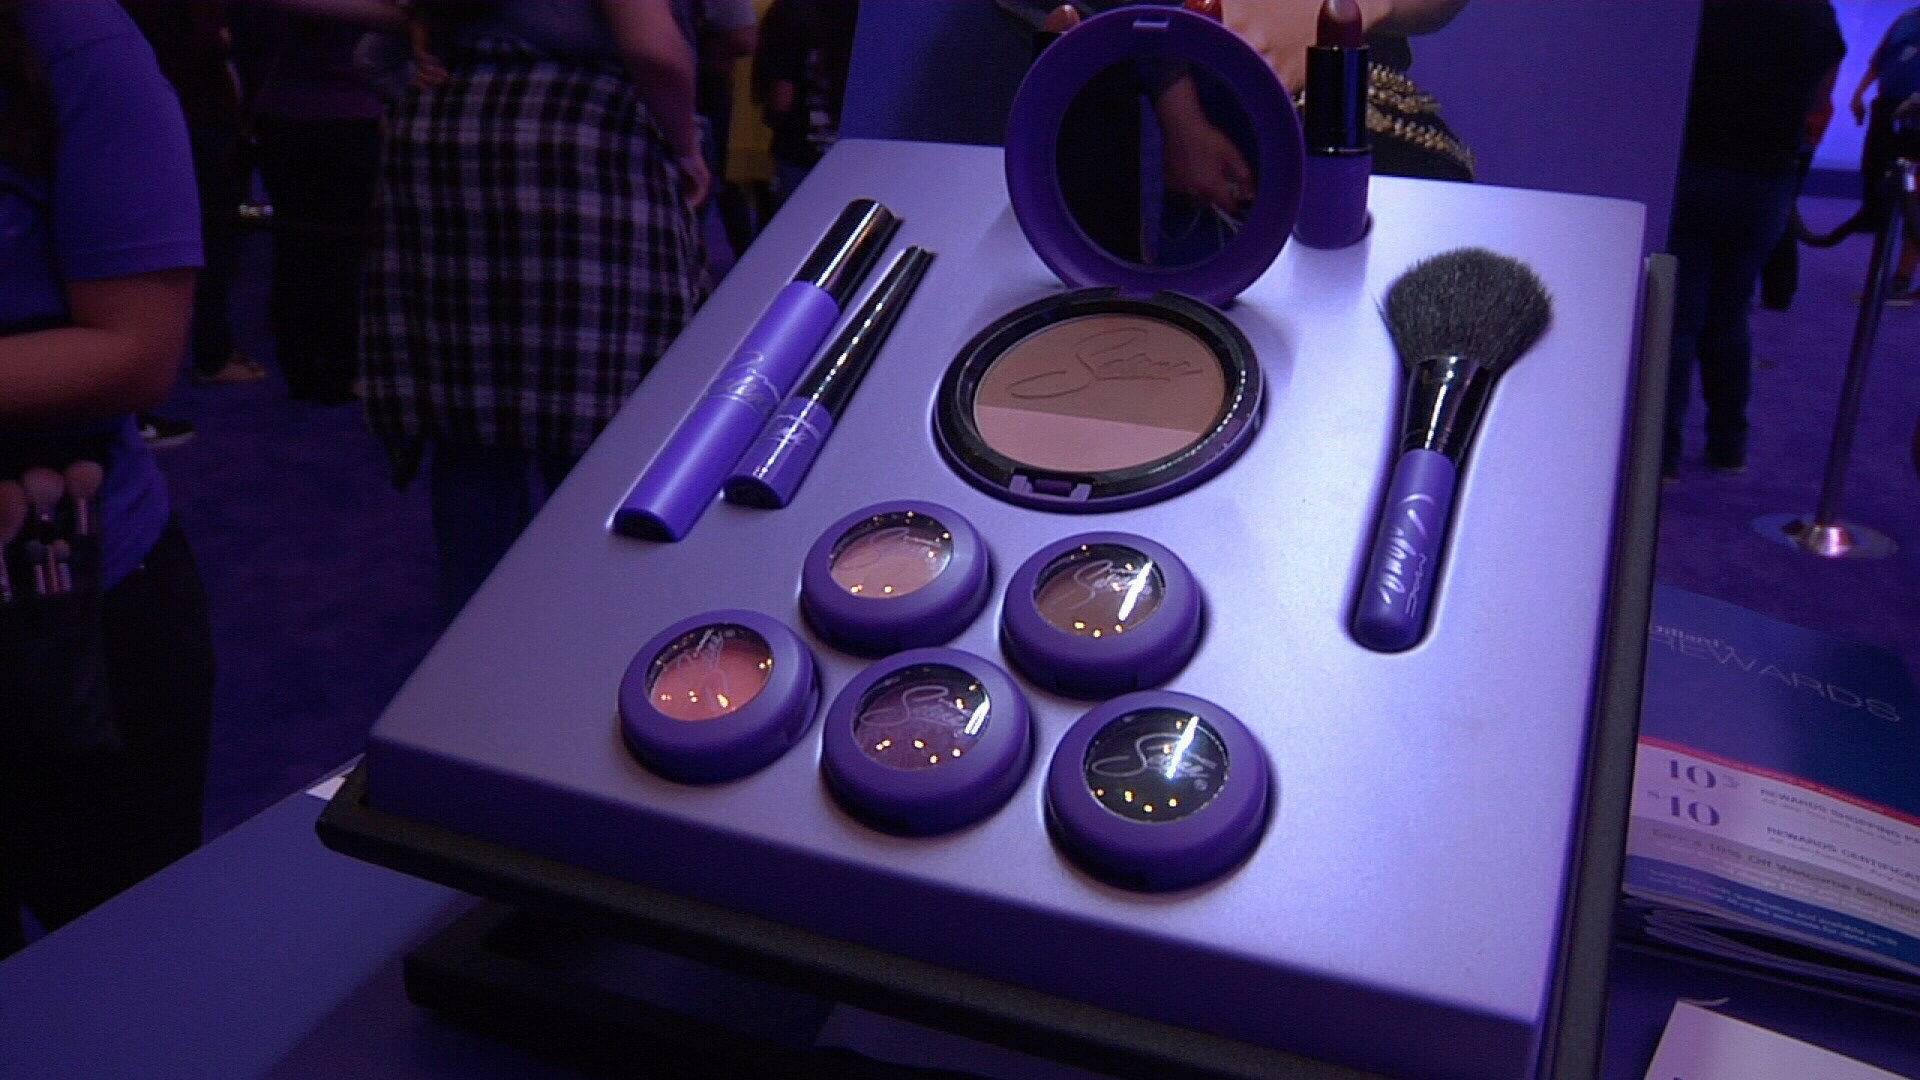 MAC Cosmetics unveiled its new makeup line inspired by late Tejano star  Selena Quintanilla-Perez